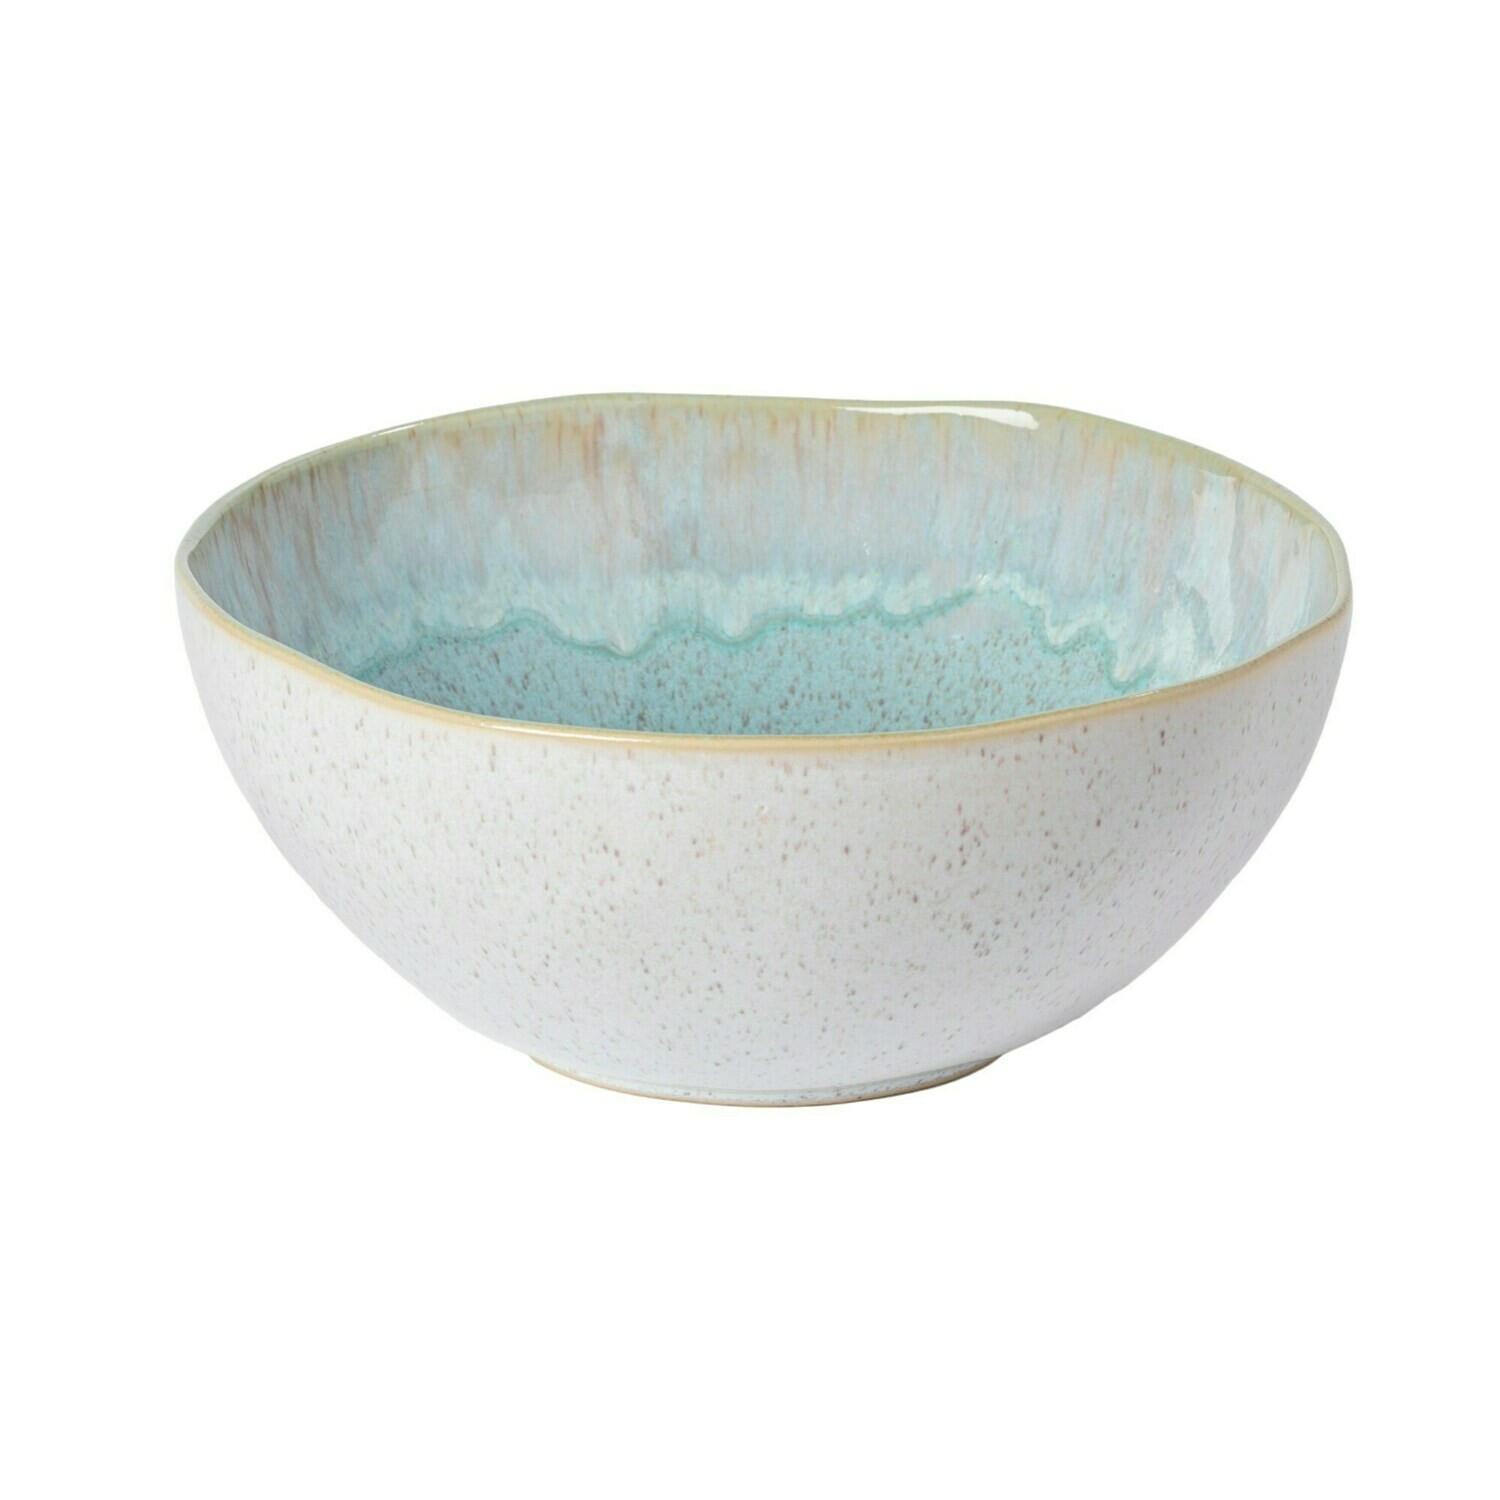 "Eivissa Serving Bowl 11"", Sea Blue"